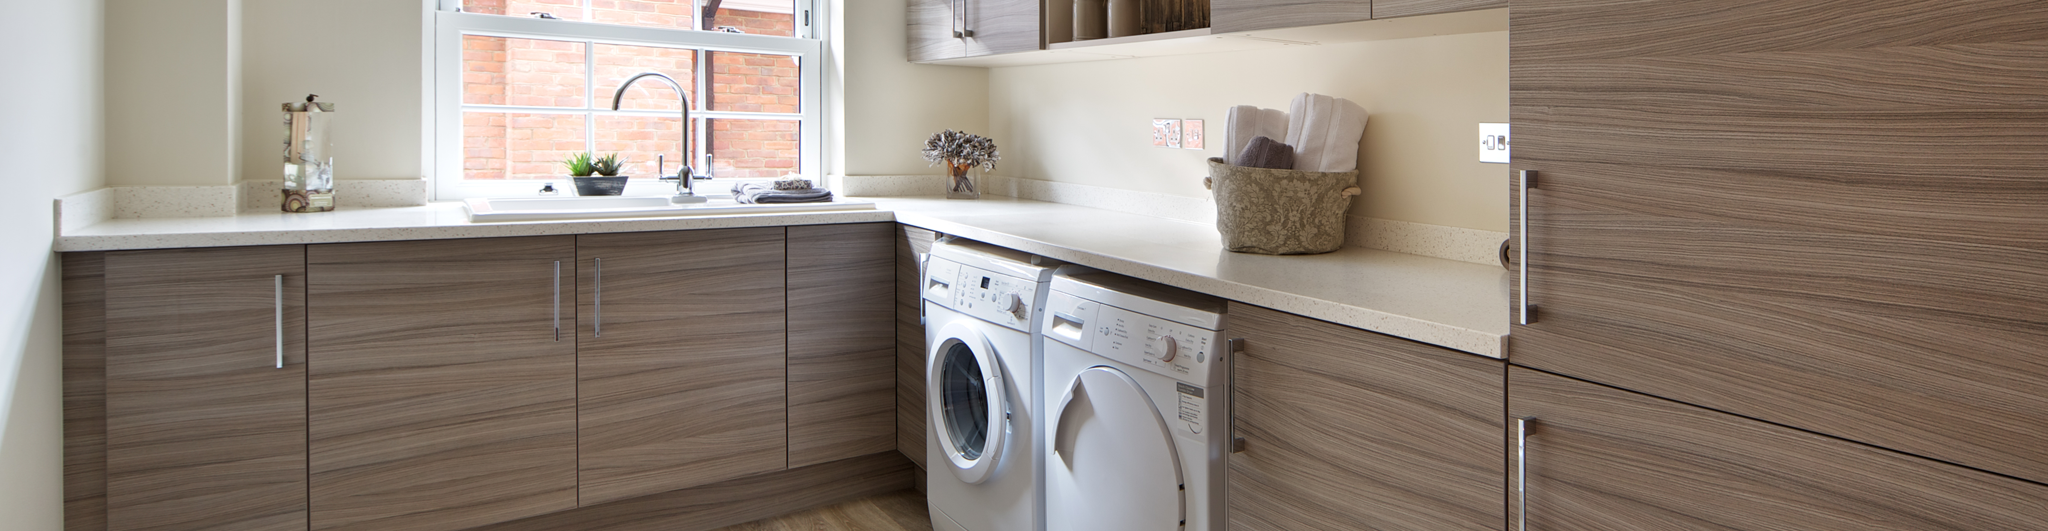 clean organized laundry room